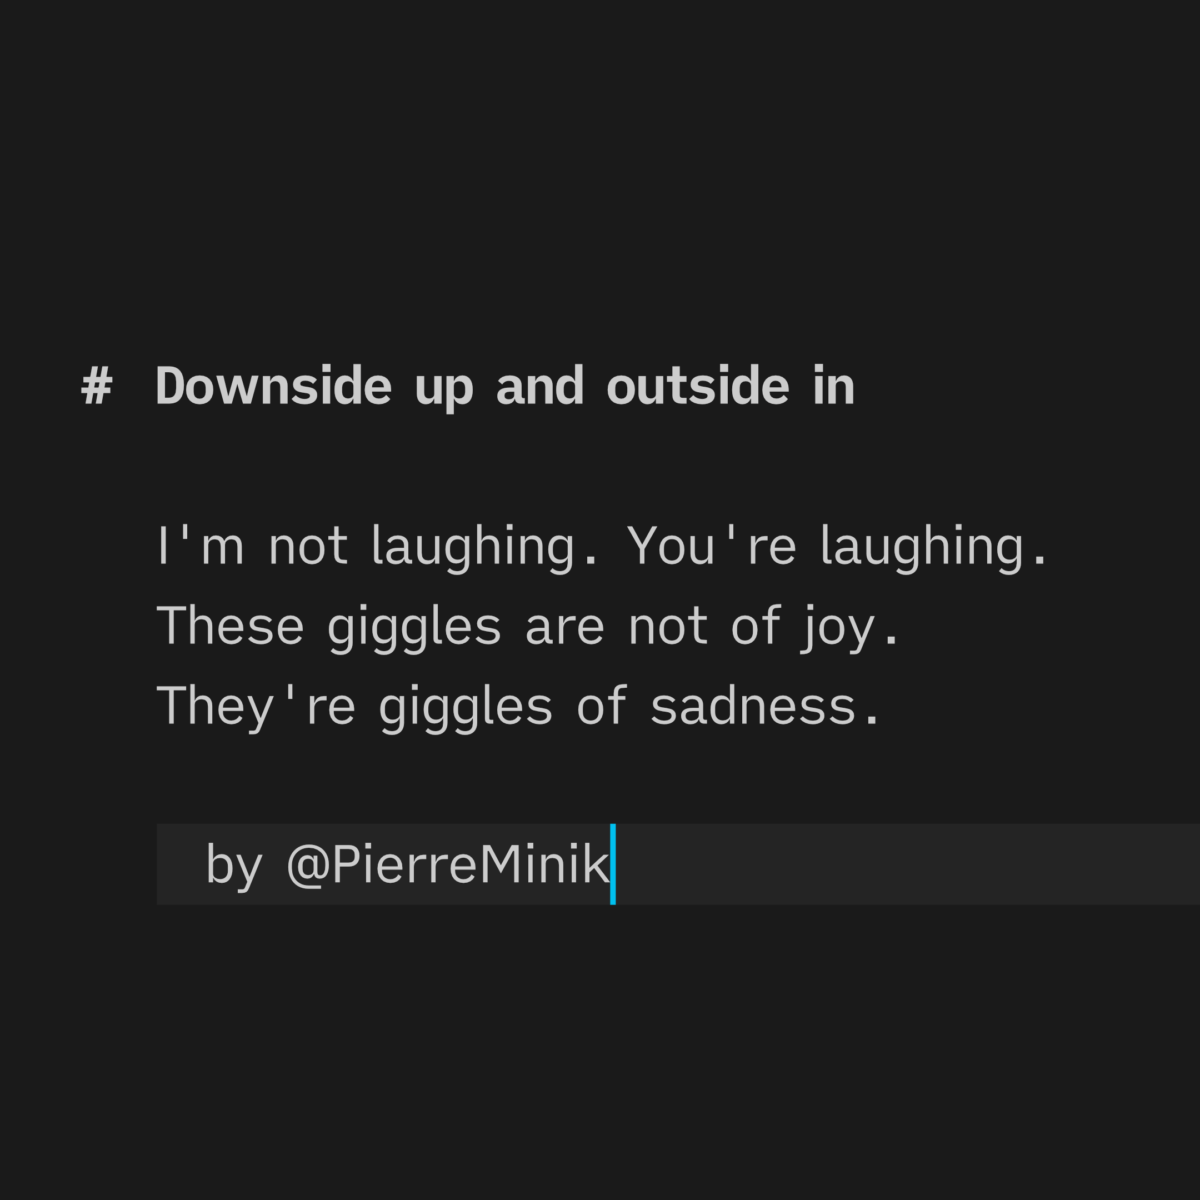 Poem by Pierre Minik. Text embedded within the content post.